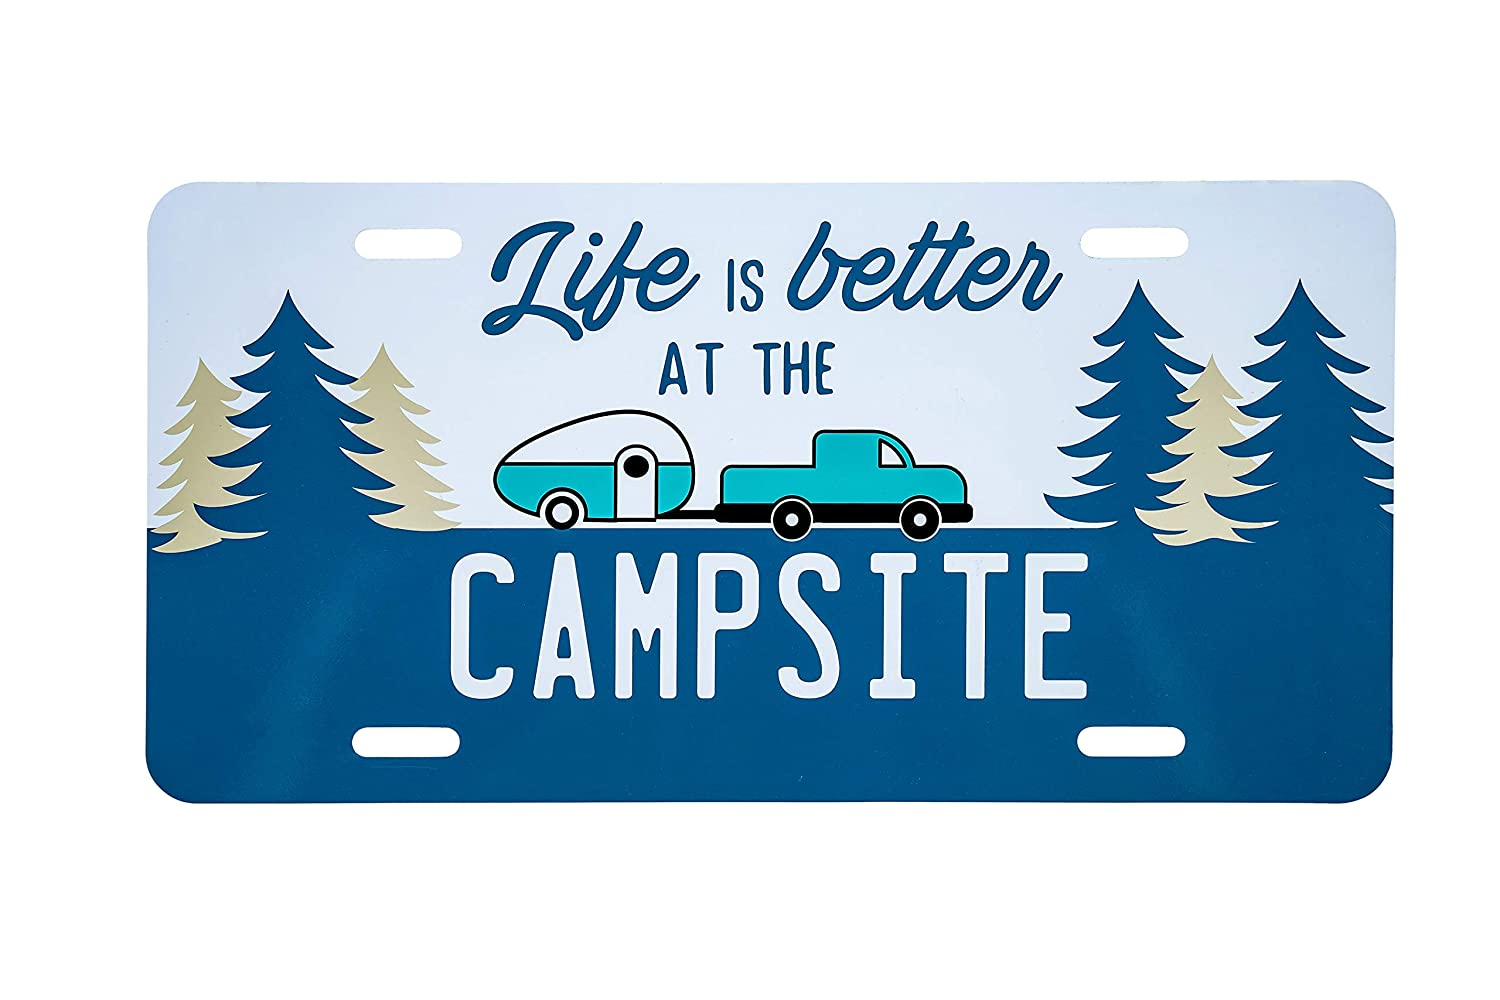 6 x 12 Camco Life is Better at The Campsite Novelty Vehicle Front License Plate-Perfect for RVs Navy Blue Campers and Trailers and More 53250